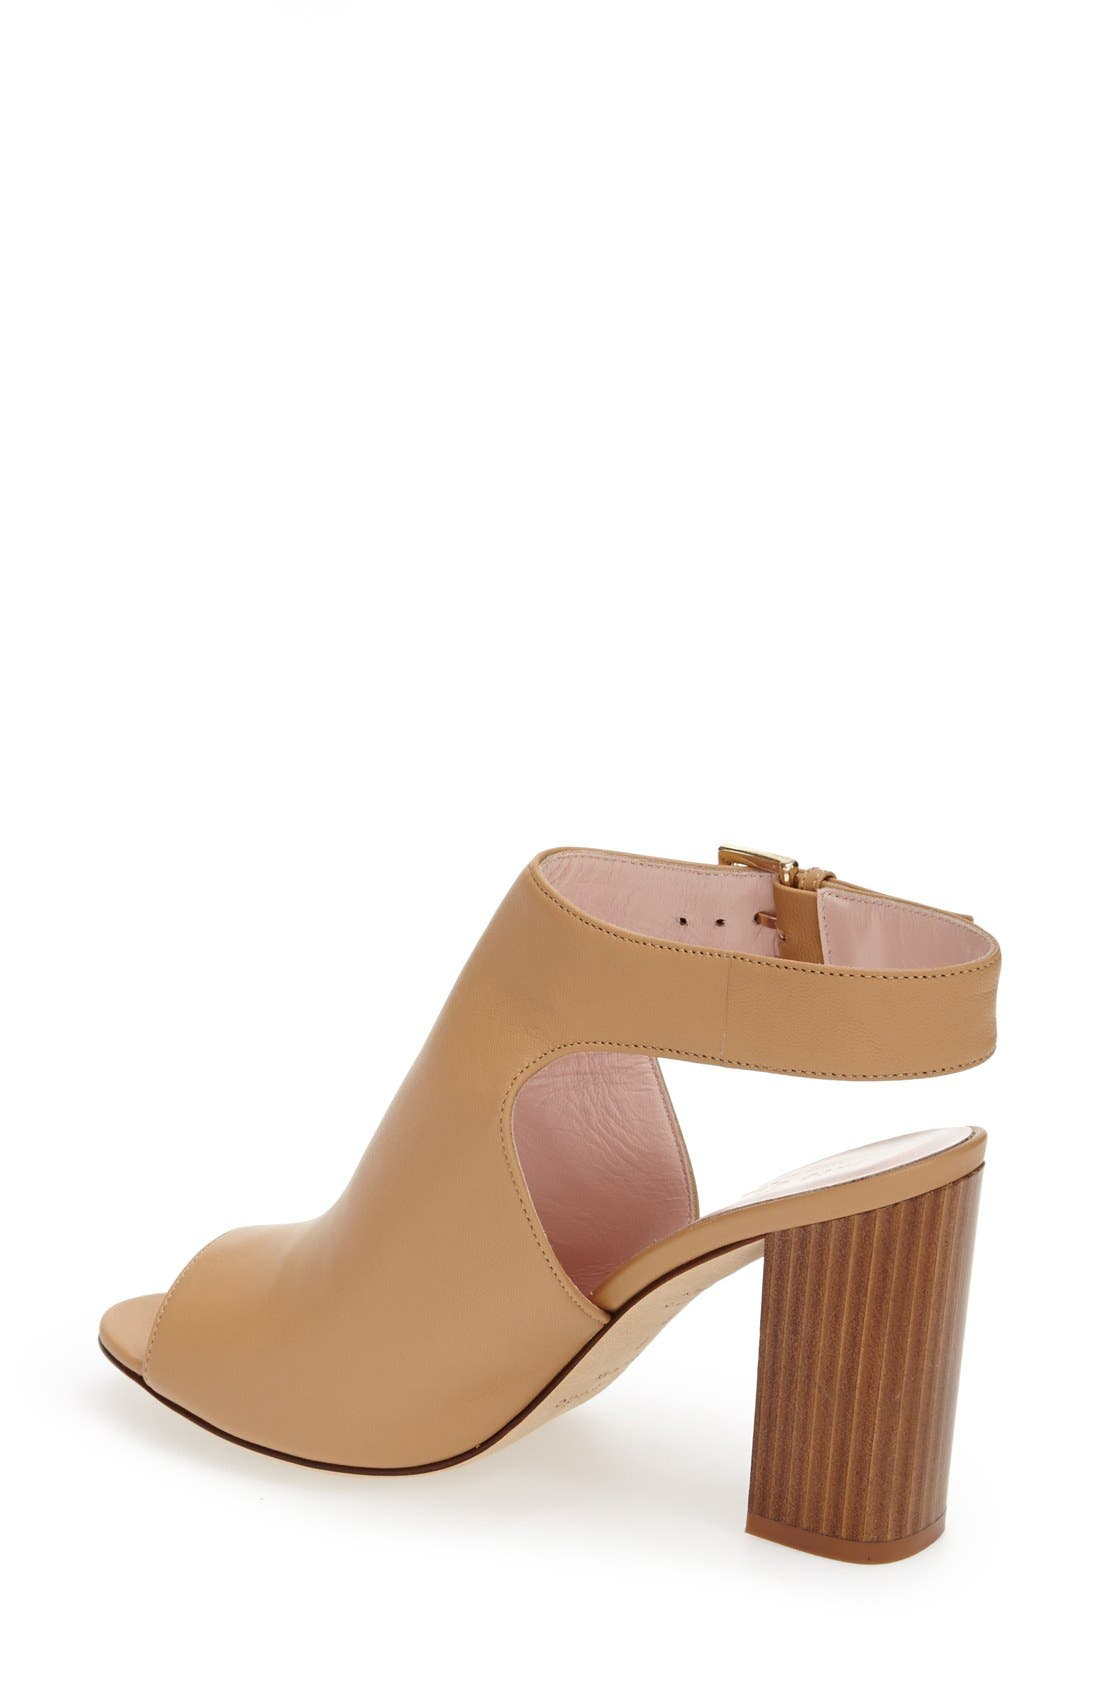 Alternate Image 2  - kate spade new york 'ingrada' slingback sandal (Women)